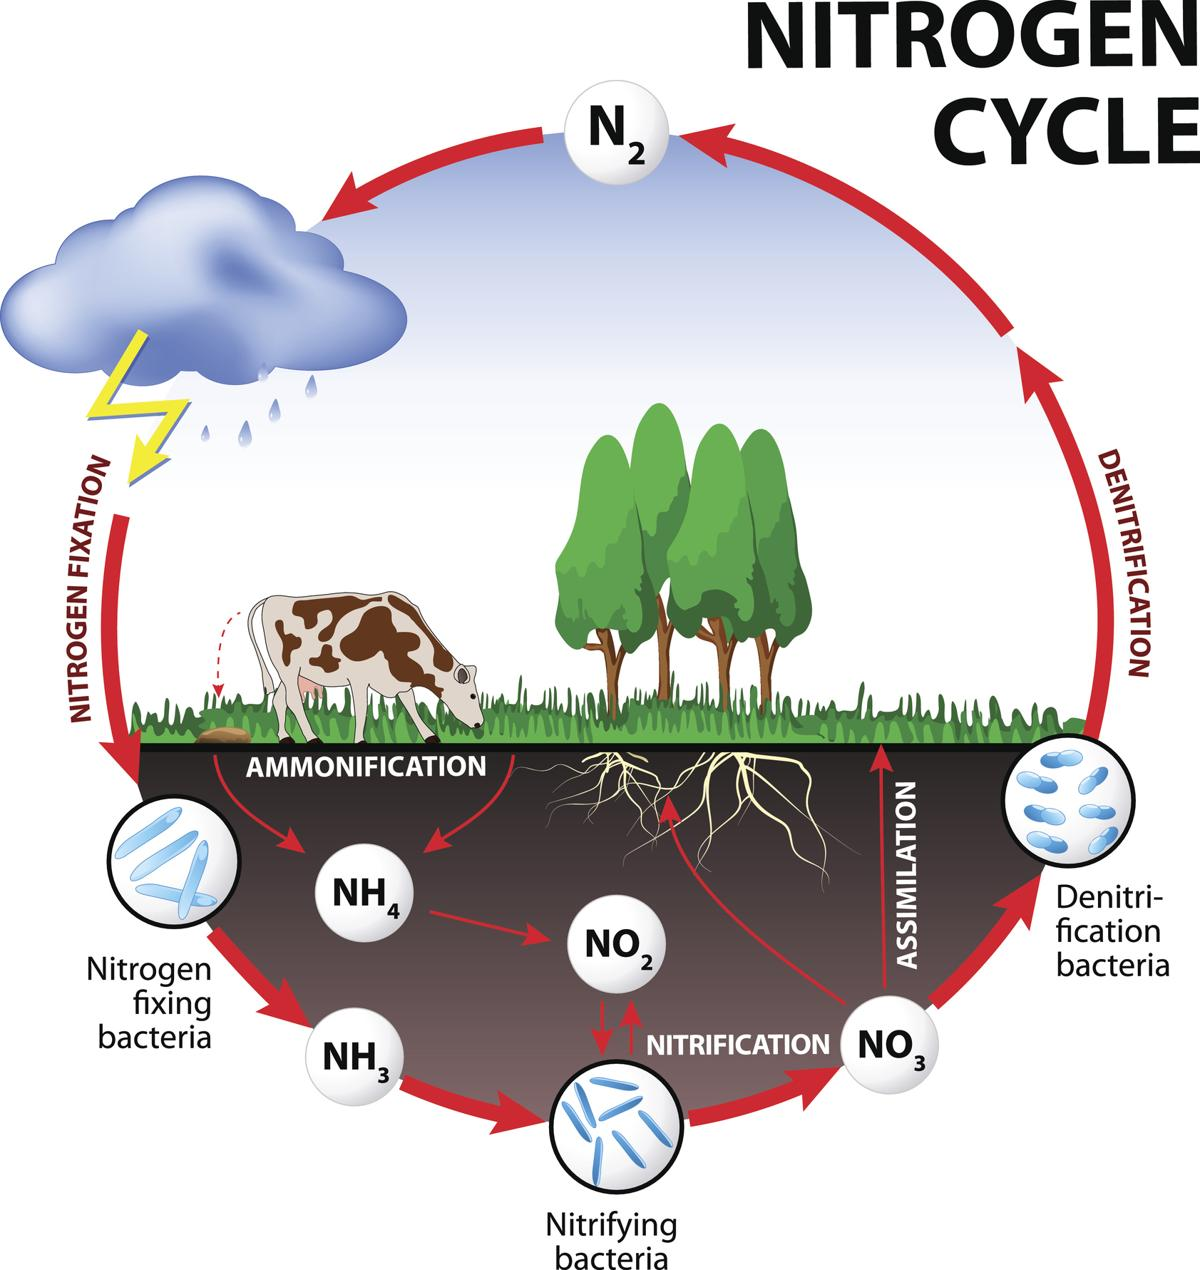 hight resolution of diagram showing the nitrogen cycle